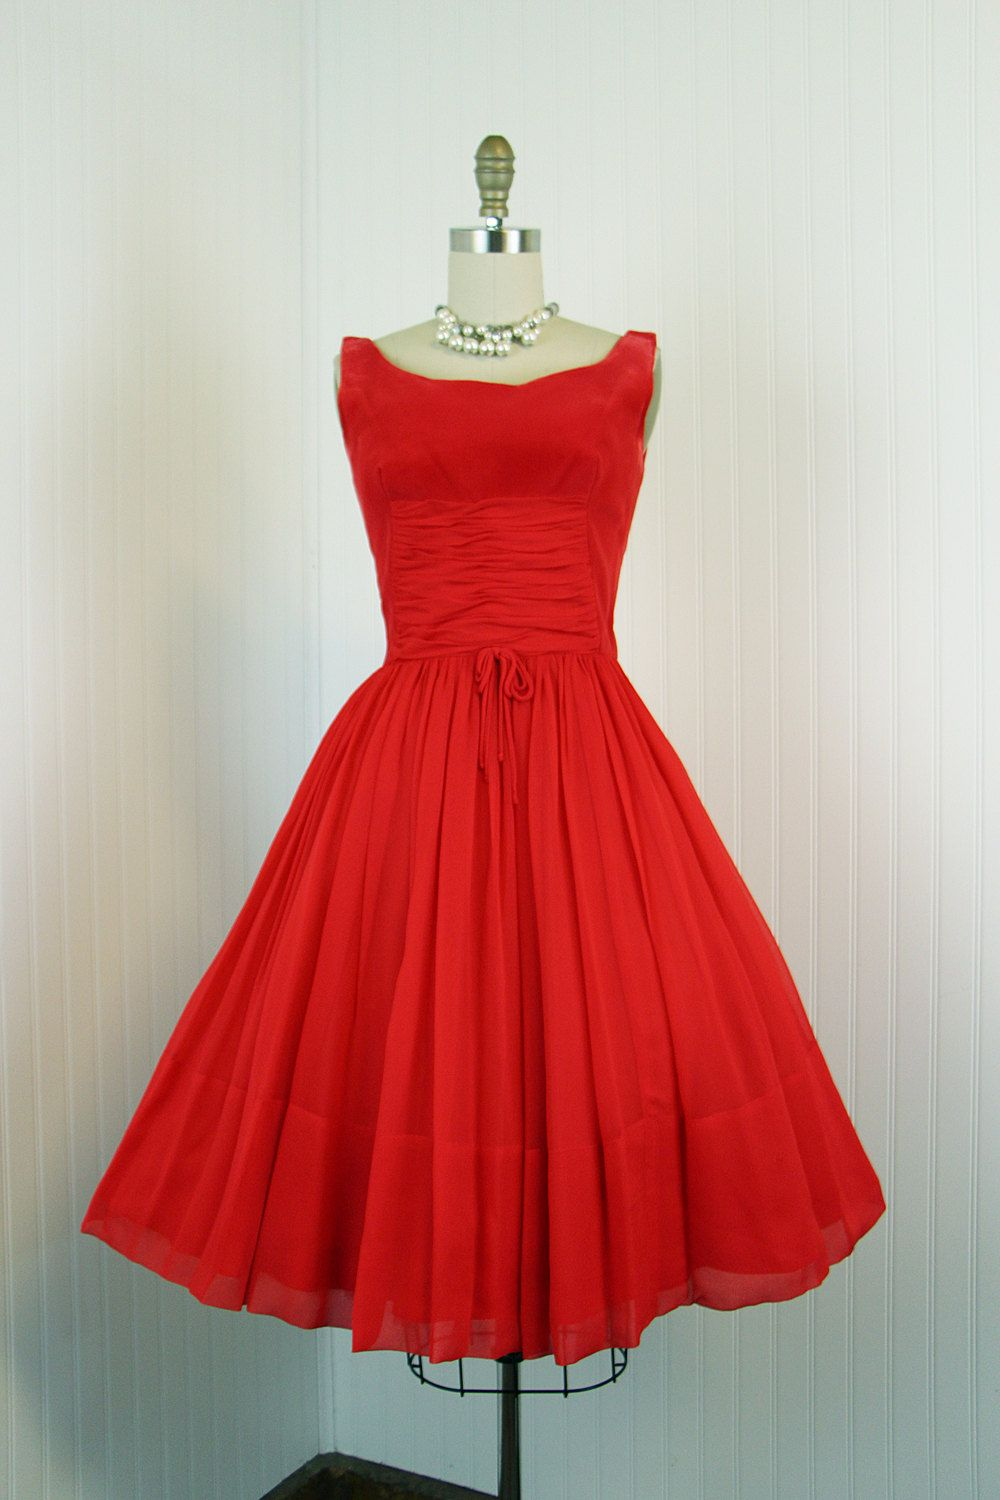 1960s Red Chiffon Party Full Skirt Cocktail Dress Vintage Dresses 1960s Vintage Dress 60s Red Dress Outfit [ 1500 x 1000 Pixel ]